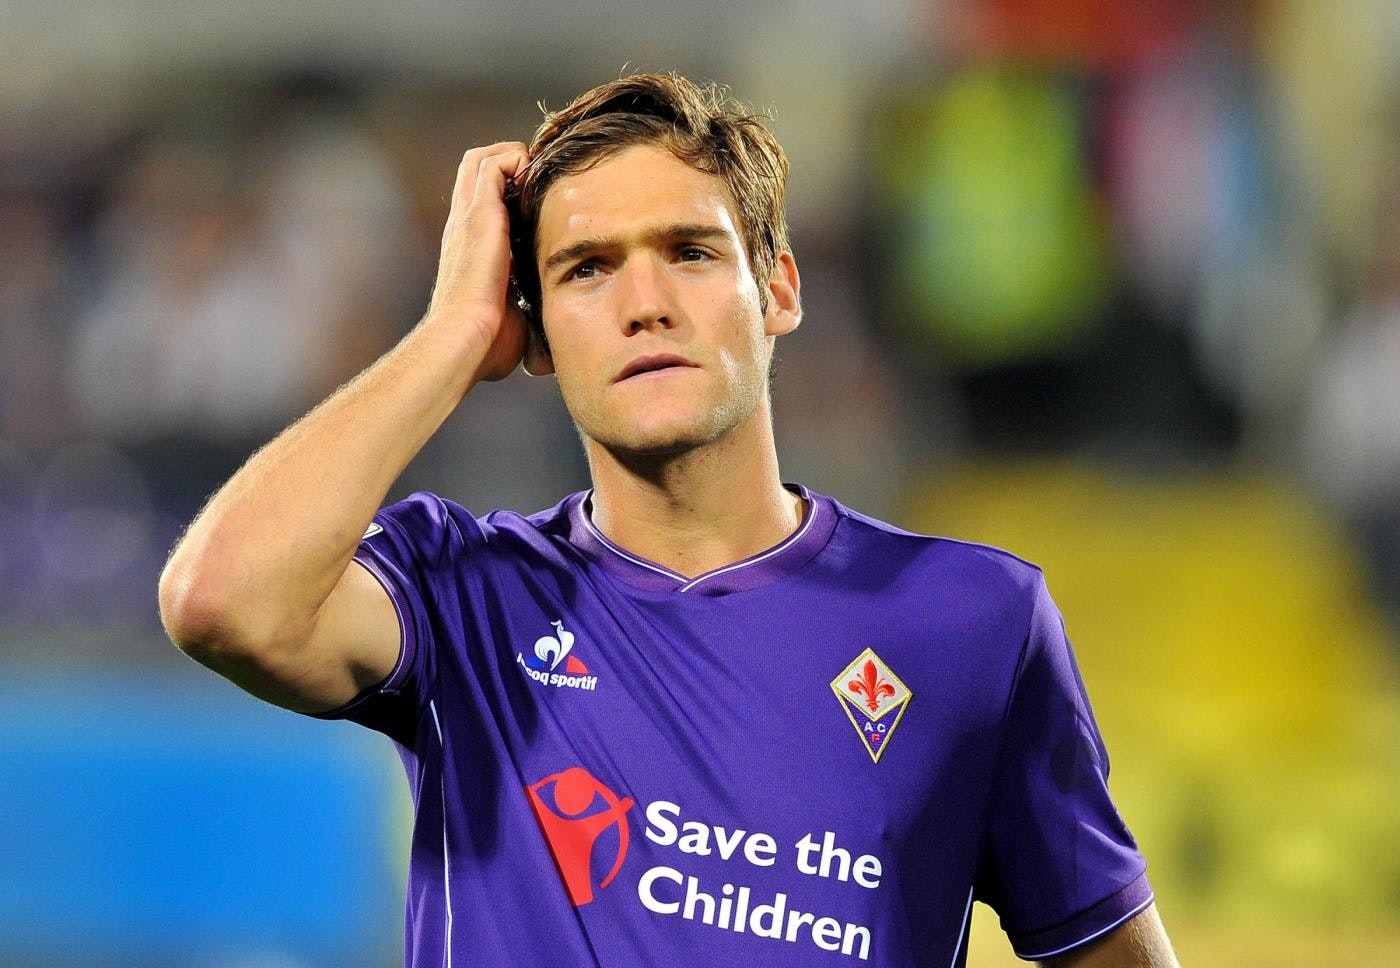 "Foto LaPresse - Jennifer Lorenzini 04/10/2015 Firenze( Italia) Sport Calcio Fiorentina - Atalanta Campionato di Calcio Serie A TIM 2015 2016 - Stadio ""Artemio Franchi"" Nella foto: Marcos Alonso Photo LaPresse - Jennifer Lorenzini 04 October 2015Firenze ( Italy) Sport Soccer Fiorentina - Atalanta Italian Football Championship League A TIM 2015 2016 - ""Artemio Franchi"" Stadium In the pic: Marcos Alonso"